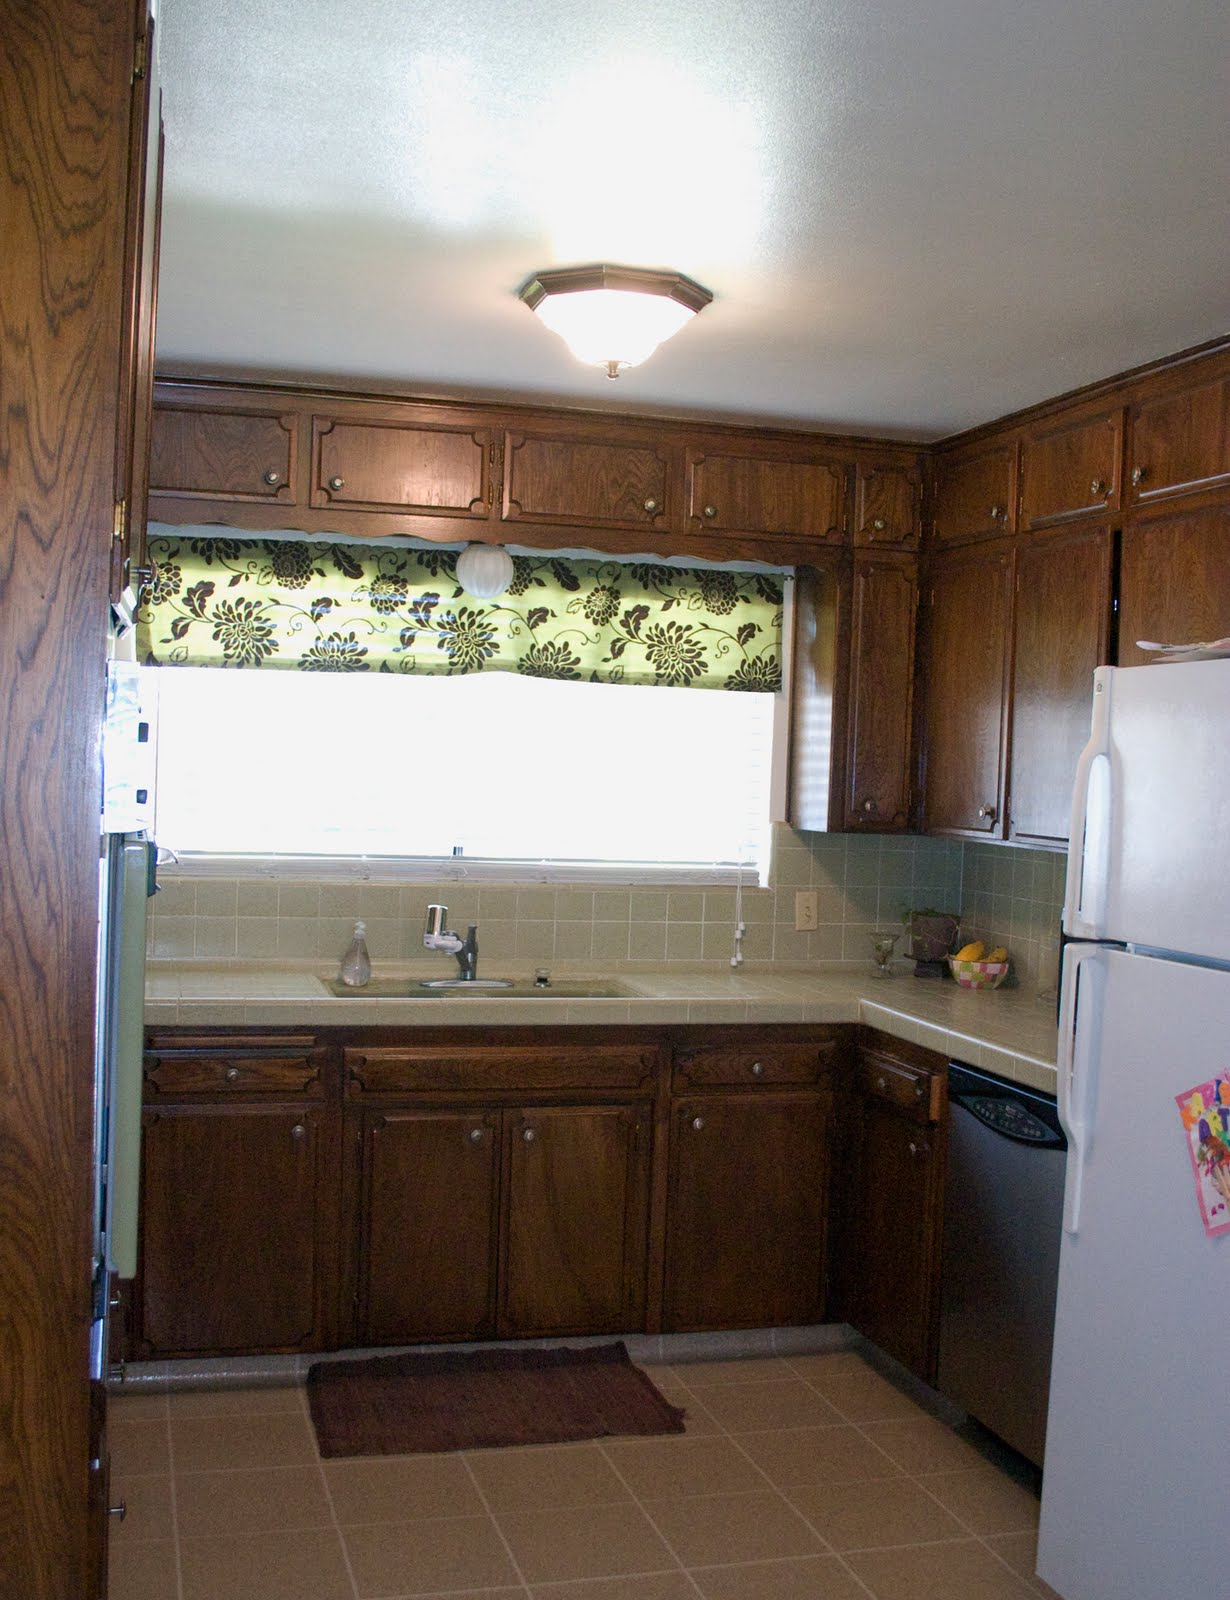 Redoing Kitchen Cabinets On A Budget - redoing kitchen cabinets on a ...